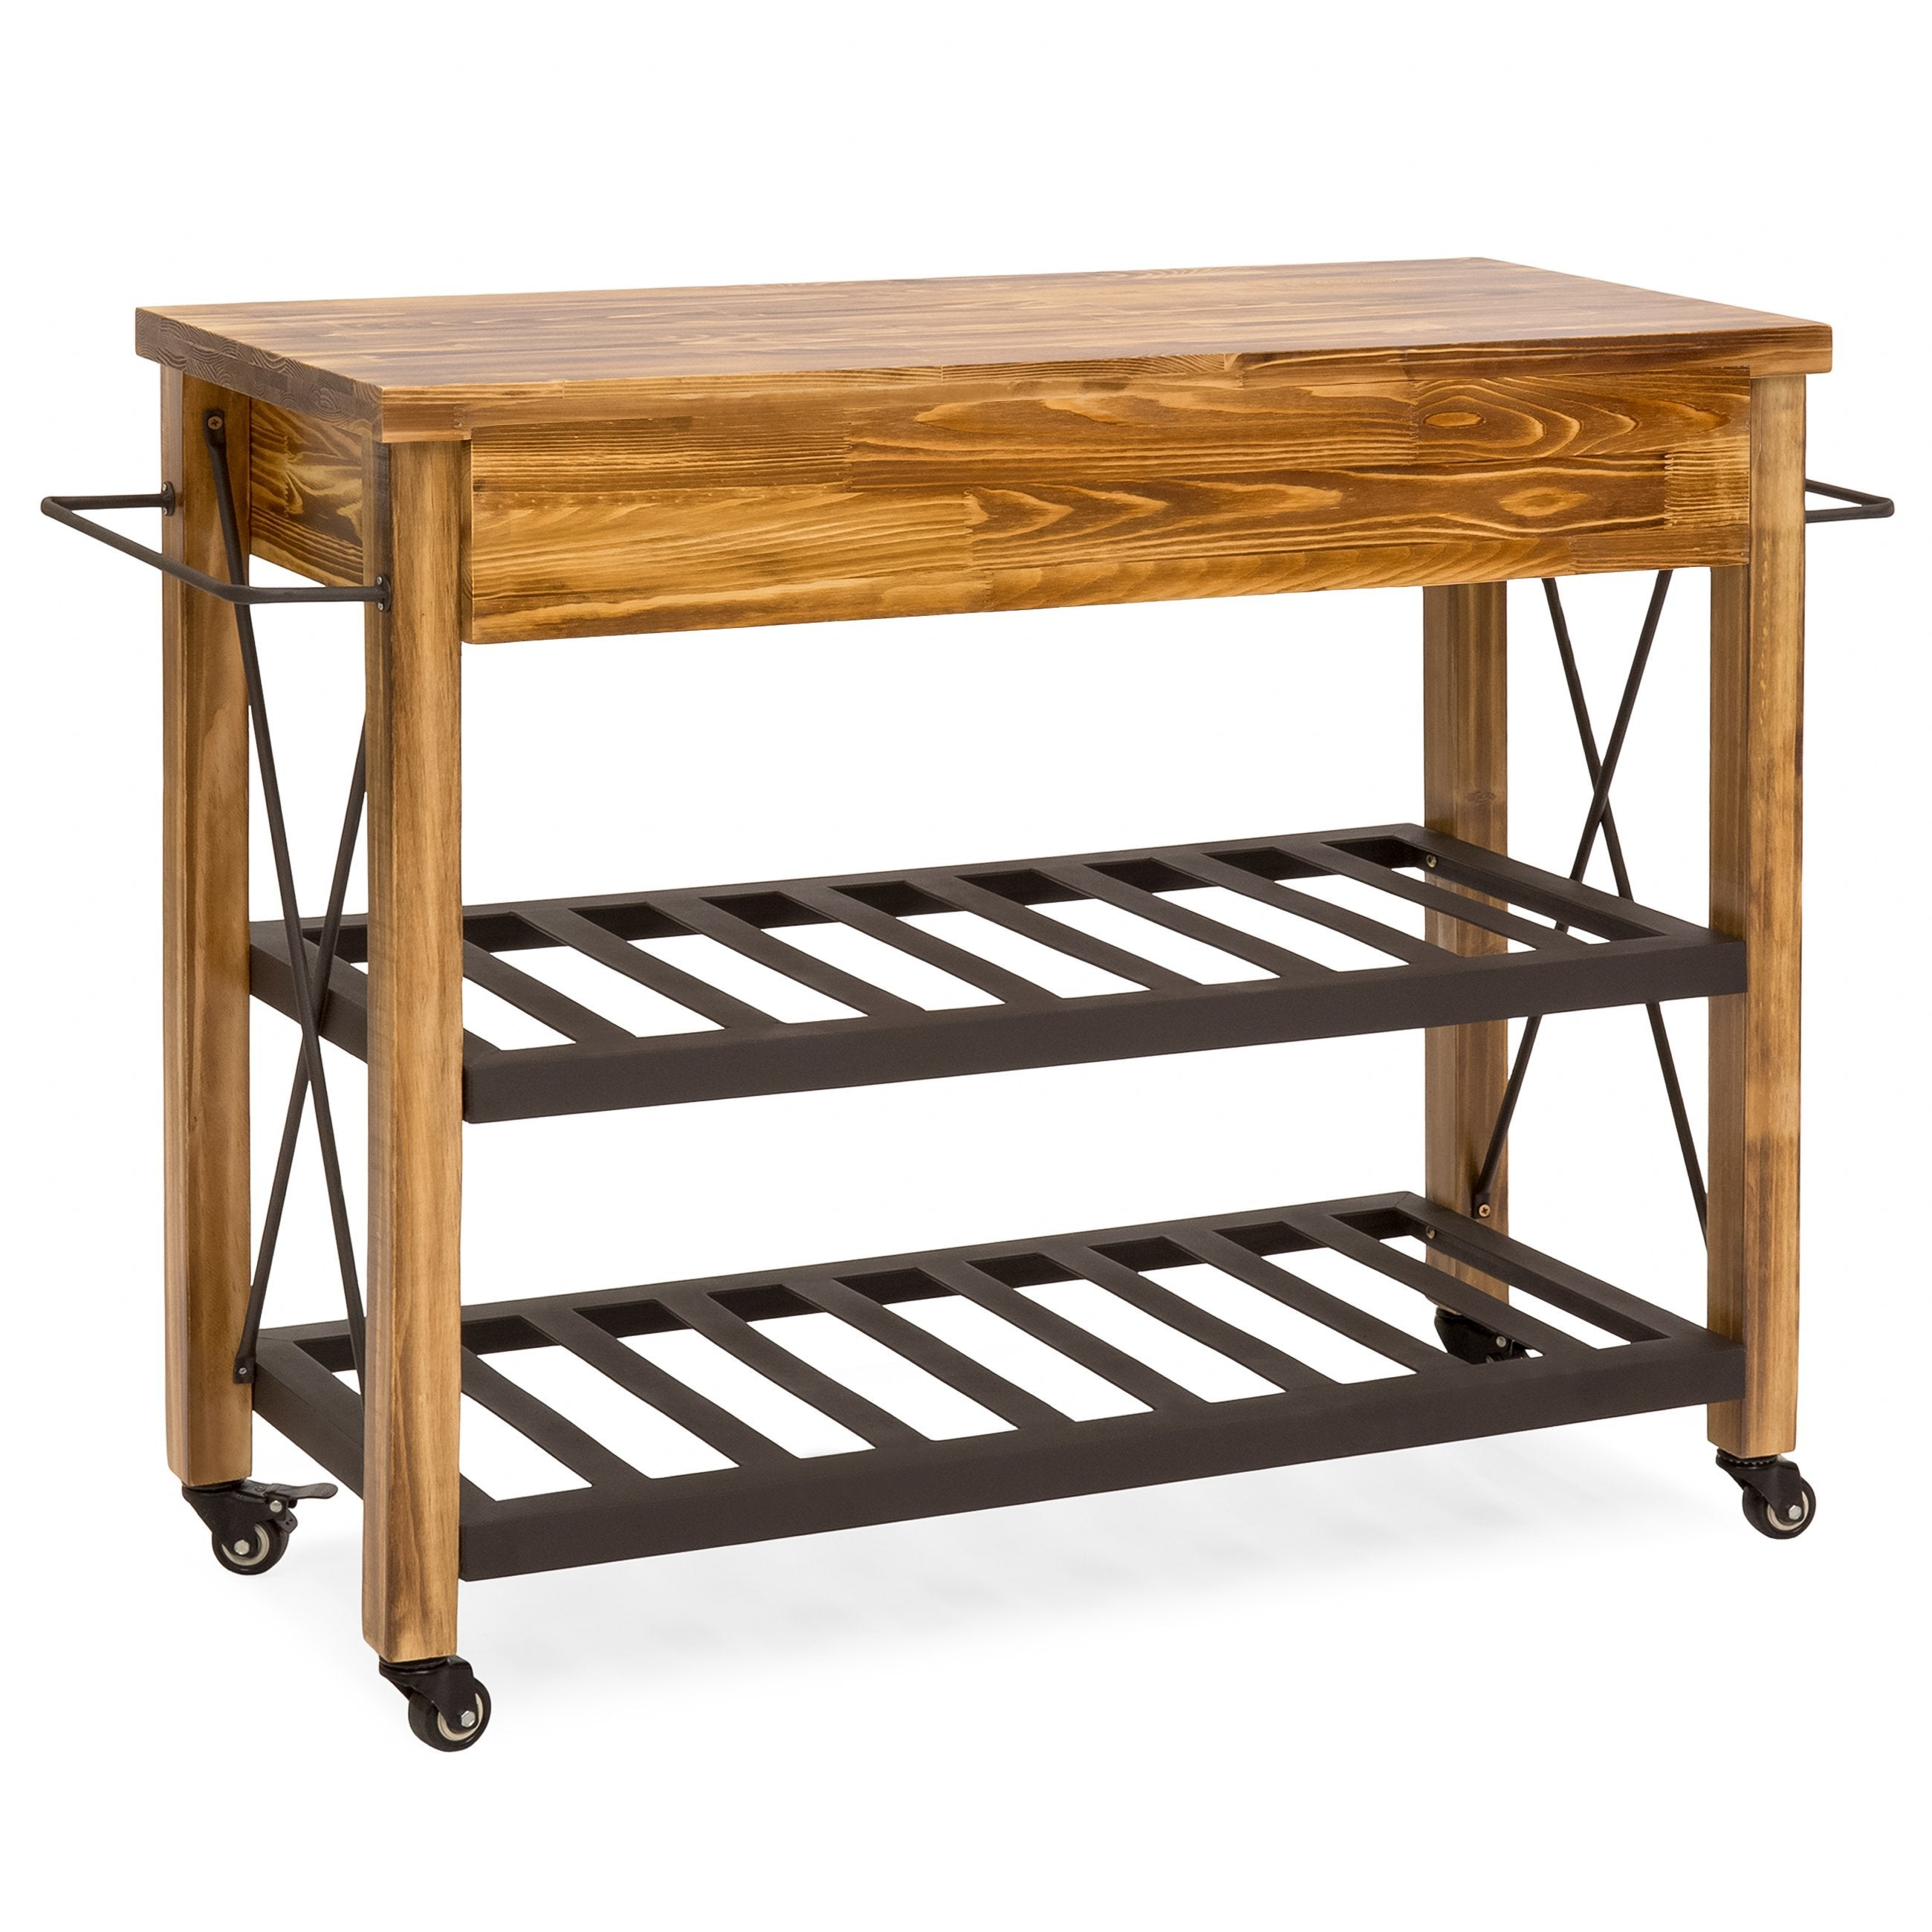 Industrial Kitchen Cart w/ Lockable Wheels - Natural